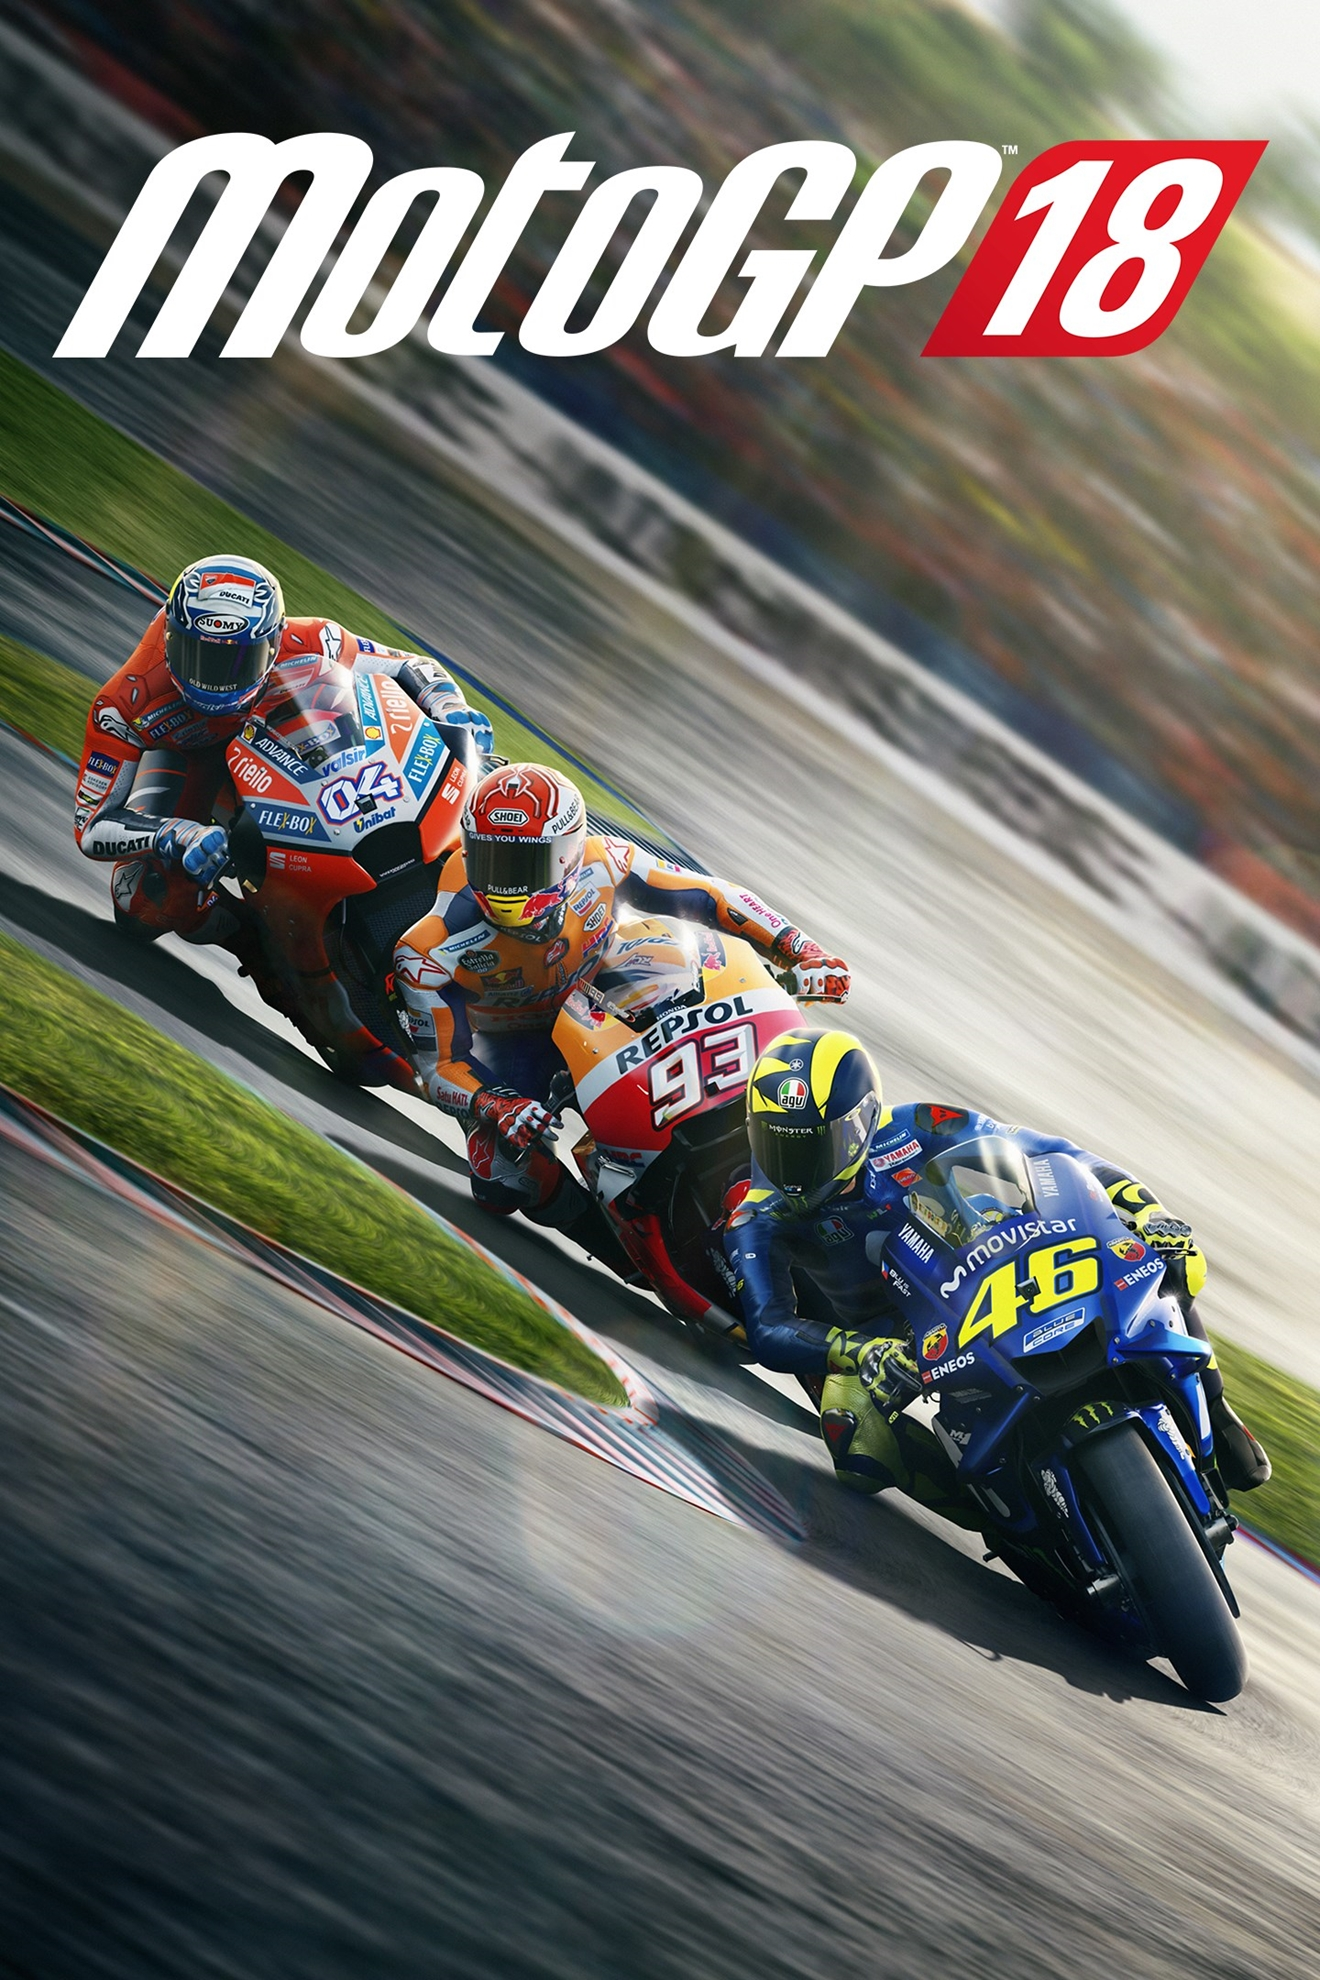 Picture of MotoGP™18